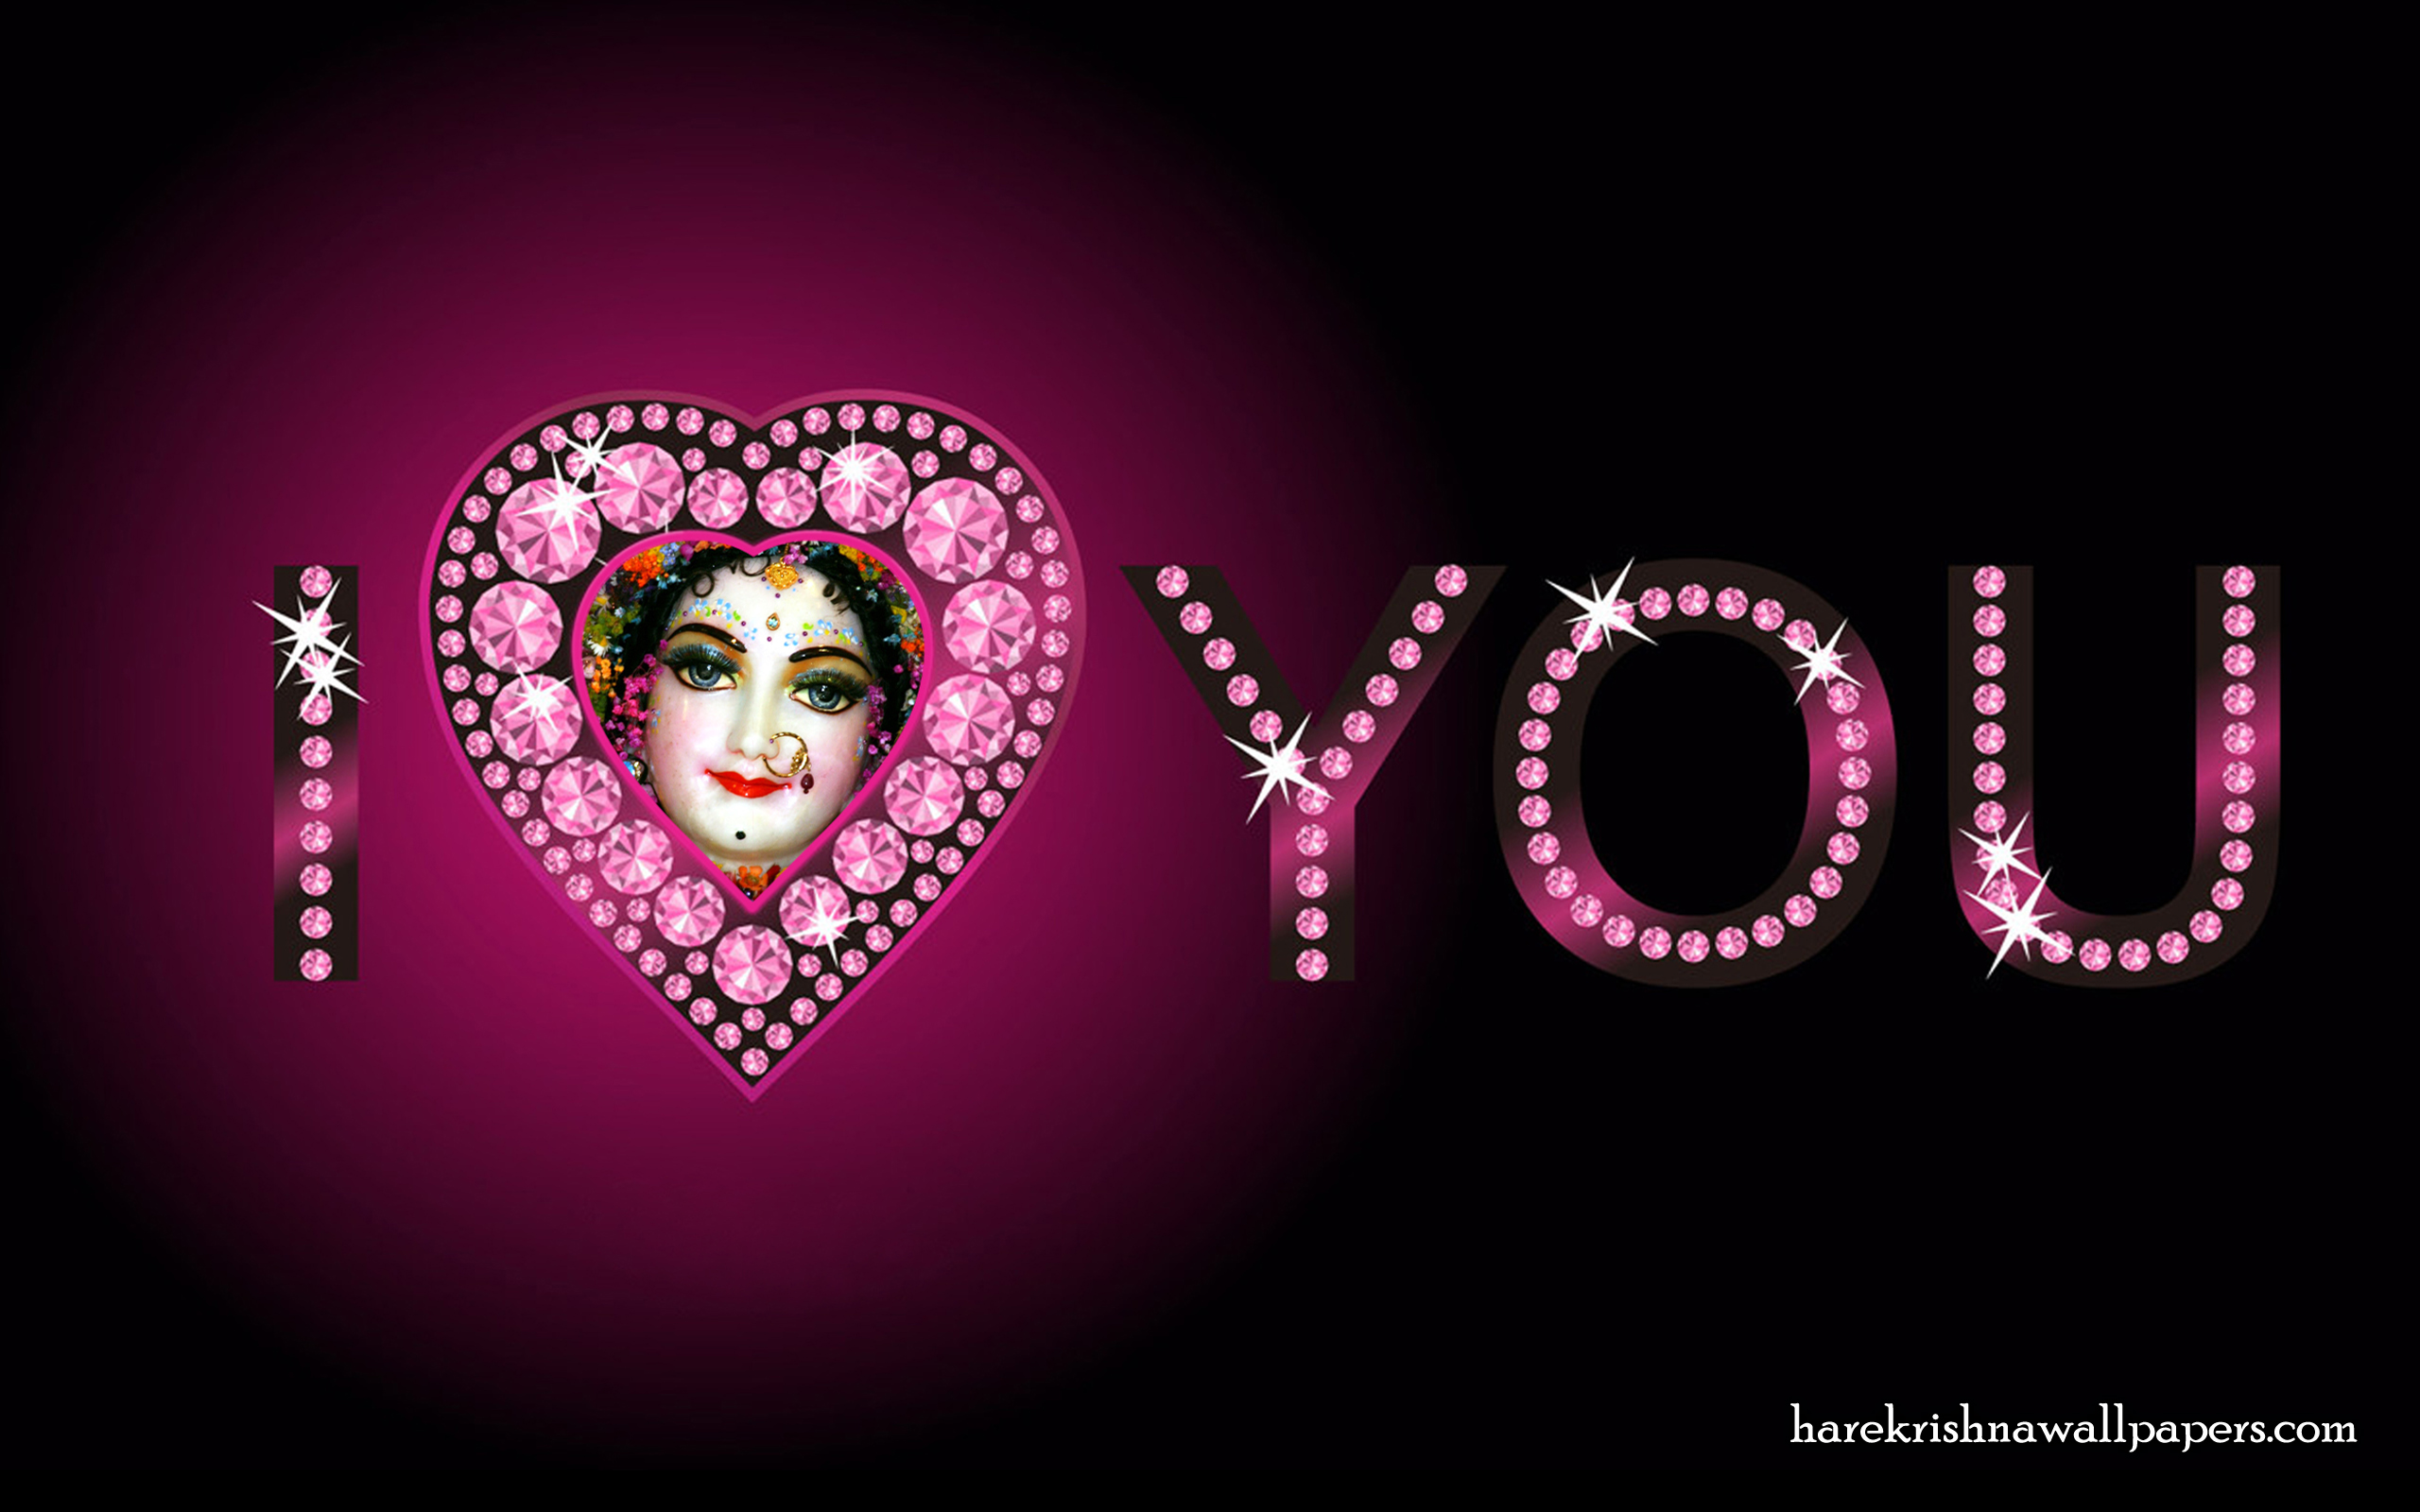 I Love You Radharani Wallpaper (014) Size 2560x1600 Download